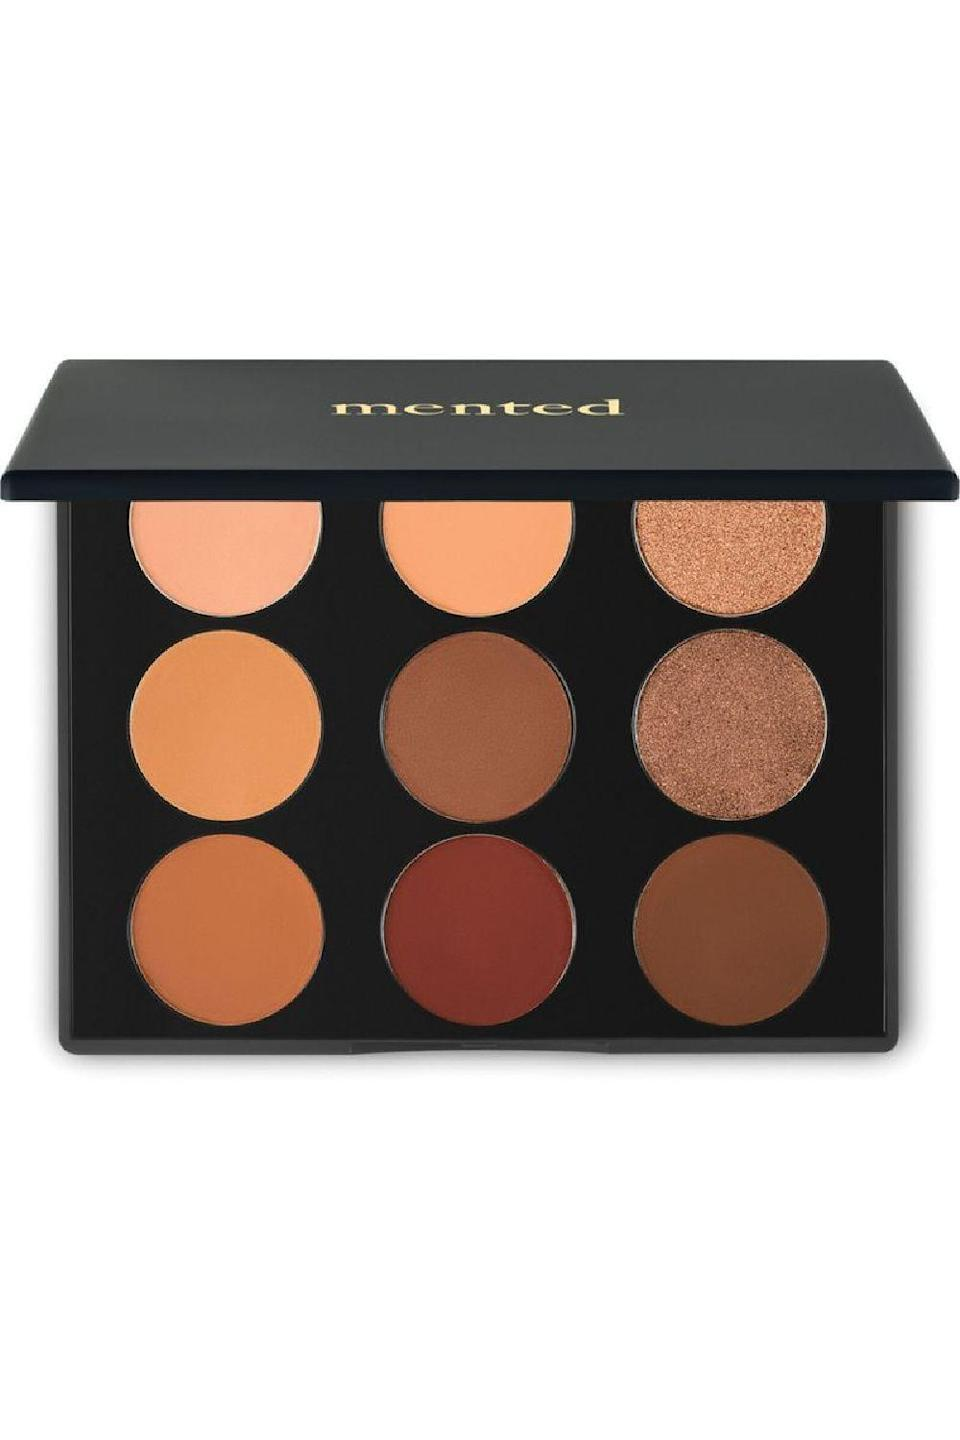 """<p><strong>mented cosmetics</strong></p><p>ulta.com</p><p><strong>$28.00</strong></p><p><a href=""""https://go.redirectingat.com?id=74968X1596630&url=https%3A%2F%2Fwww.ulta.com%2Feveryday-eyeshadow-palette%3FproductId%3Dpimprod2021936&sref=https%3A%2F%2Fwww.cosmopolitan.com%2Fstyle-beauty%2Fbeauty%2Fg36596599%2Fbest-eyeshadow-palettes%2F"""" rel=""""nofollow noopener"""" target=""""_blank"""" data-ylk=""""slk:Shop Now"""" class=""""link rapid-noclick-resp"""">Shop Now</a></p><p>Whether you've got to quickly put together a<a href=""""https://www.cosmopolitan.com/style-beauty/beauty/a32437531/zoom-makeup-how-to-look-good/"""" rel=""""nofollow noopener"""" target=""""_blank"""" data-ylk=""""slk:makeup look for a Zoom meeting"""" class=""""link rapid-noclick-resp""""> makeup look for a Zoom meeting</a> or just want to add a little somethin' somethin' to your everyday face for happy hour, reach for this classic color collection full of neutral browns. It's <strong>small enough to take with you on the go</strong>, and each of the shades can be built up or toned down to suit your vibe.</p>"""